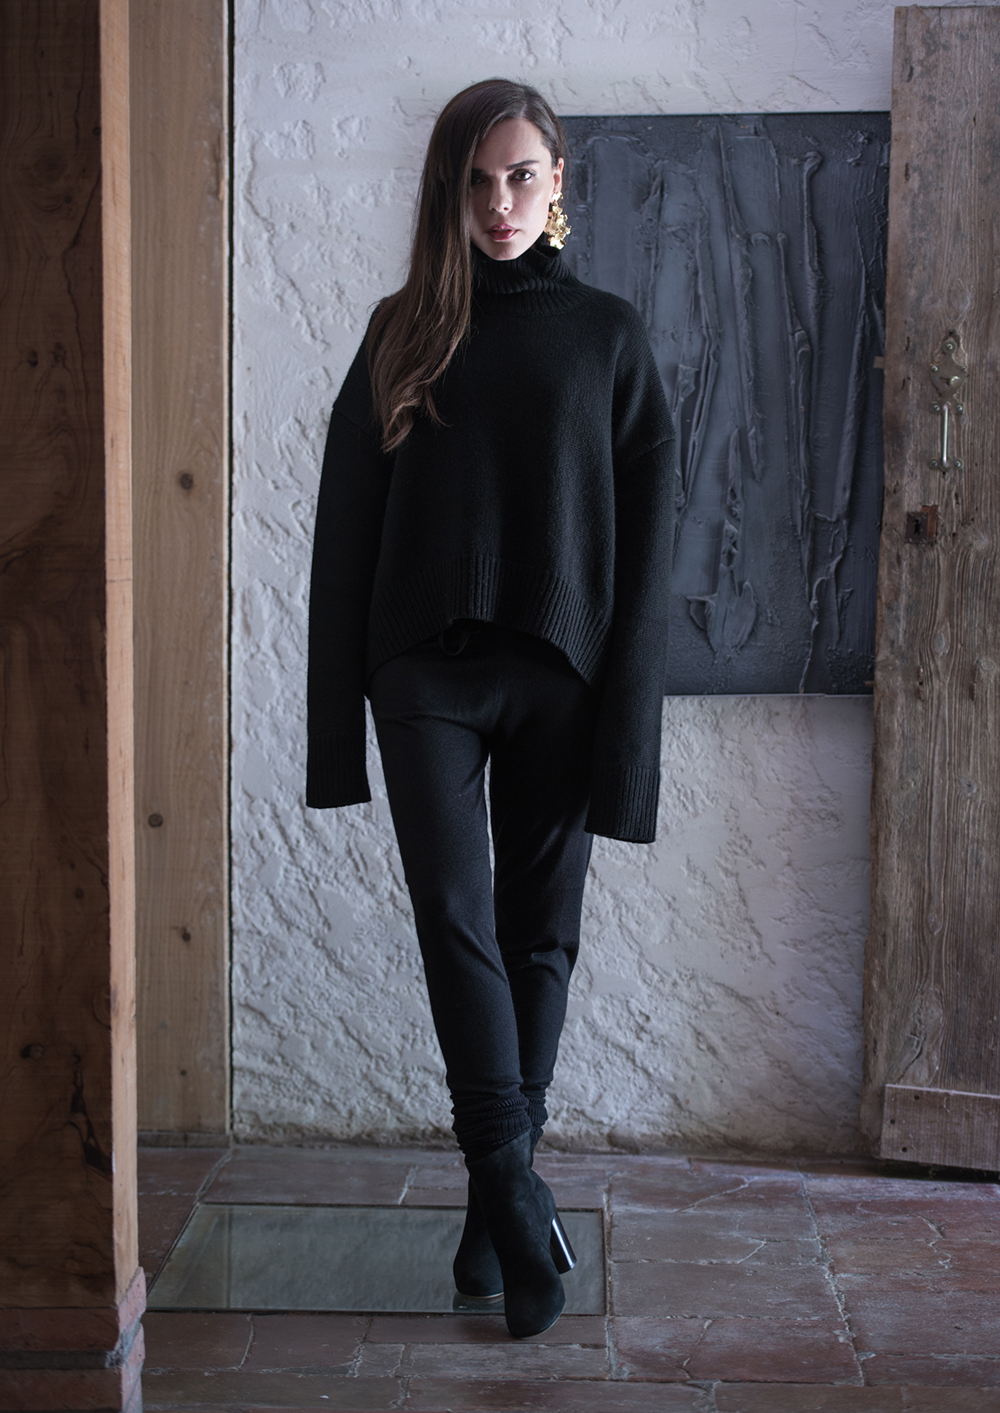 Evangelie Smyrniotaki is wearing an oversized black sweater from Celine, trousers and boots from Isabel Marant